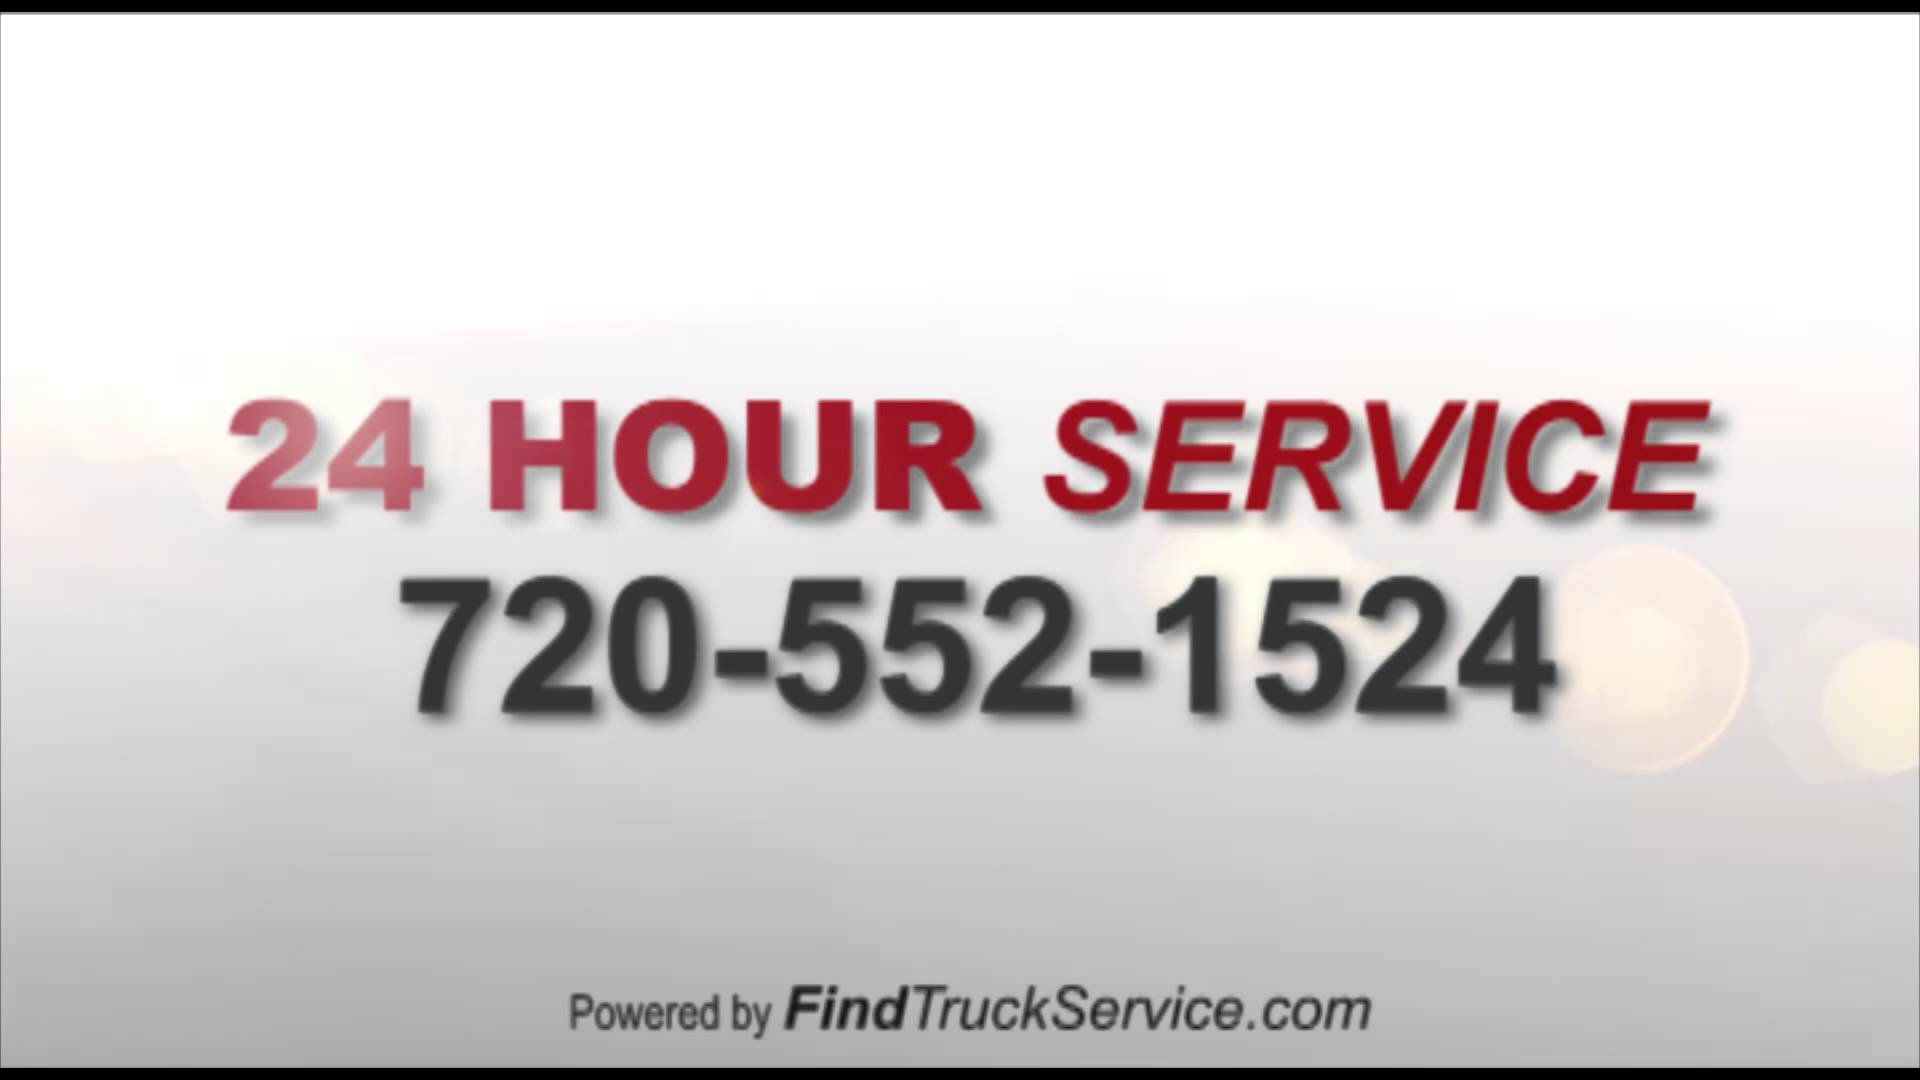 Done Right Road Service in Aurora, CO | 24 Hour Find Truck Service